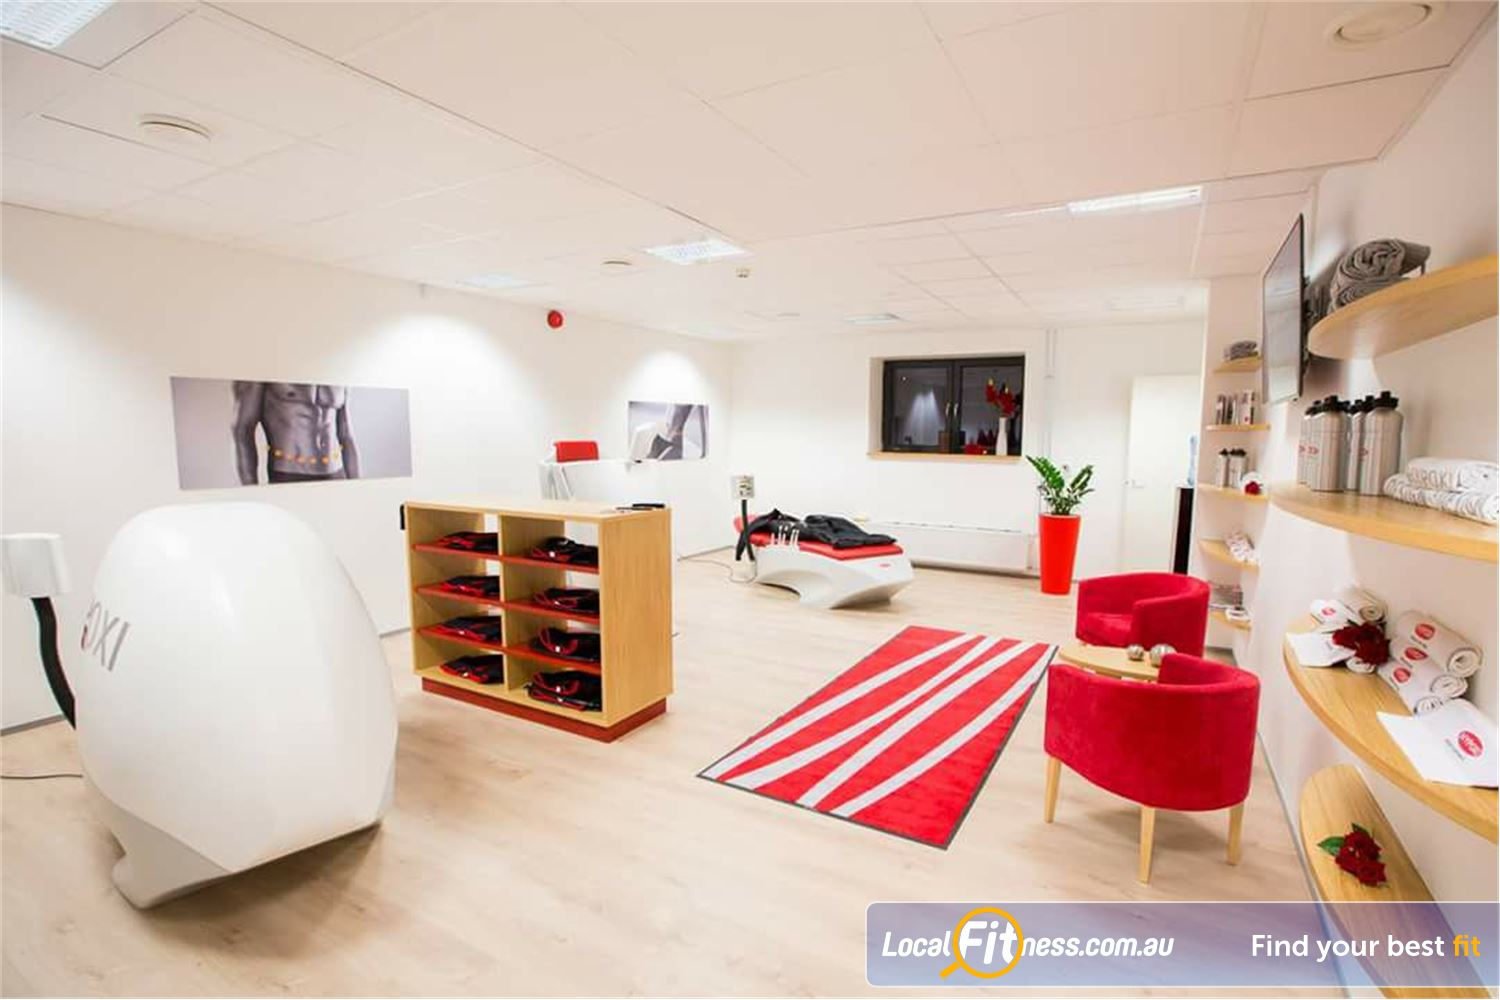 HYPOXI Weight Loss Near Hawthorn Our HYPOXI Westbourne Park weight-loss is personalised catering 3-4 people at a time.